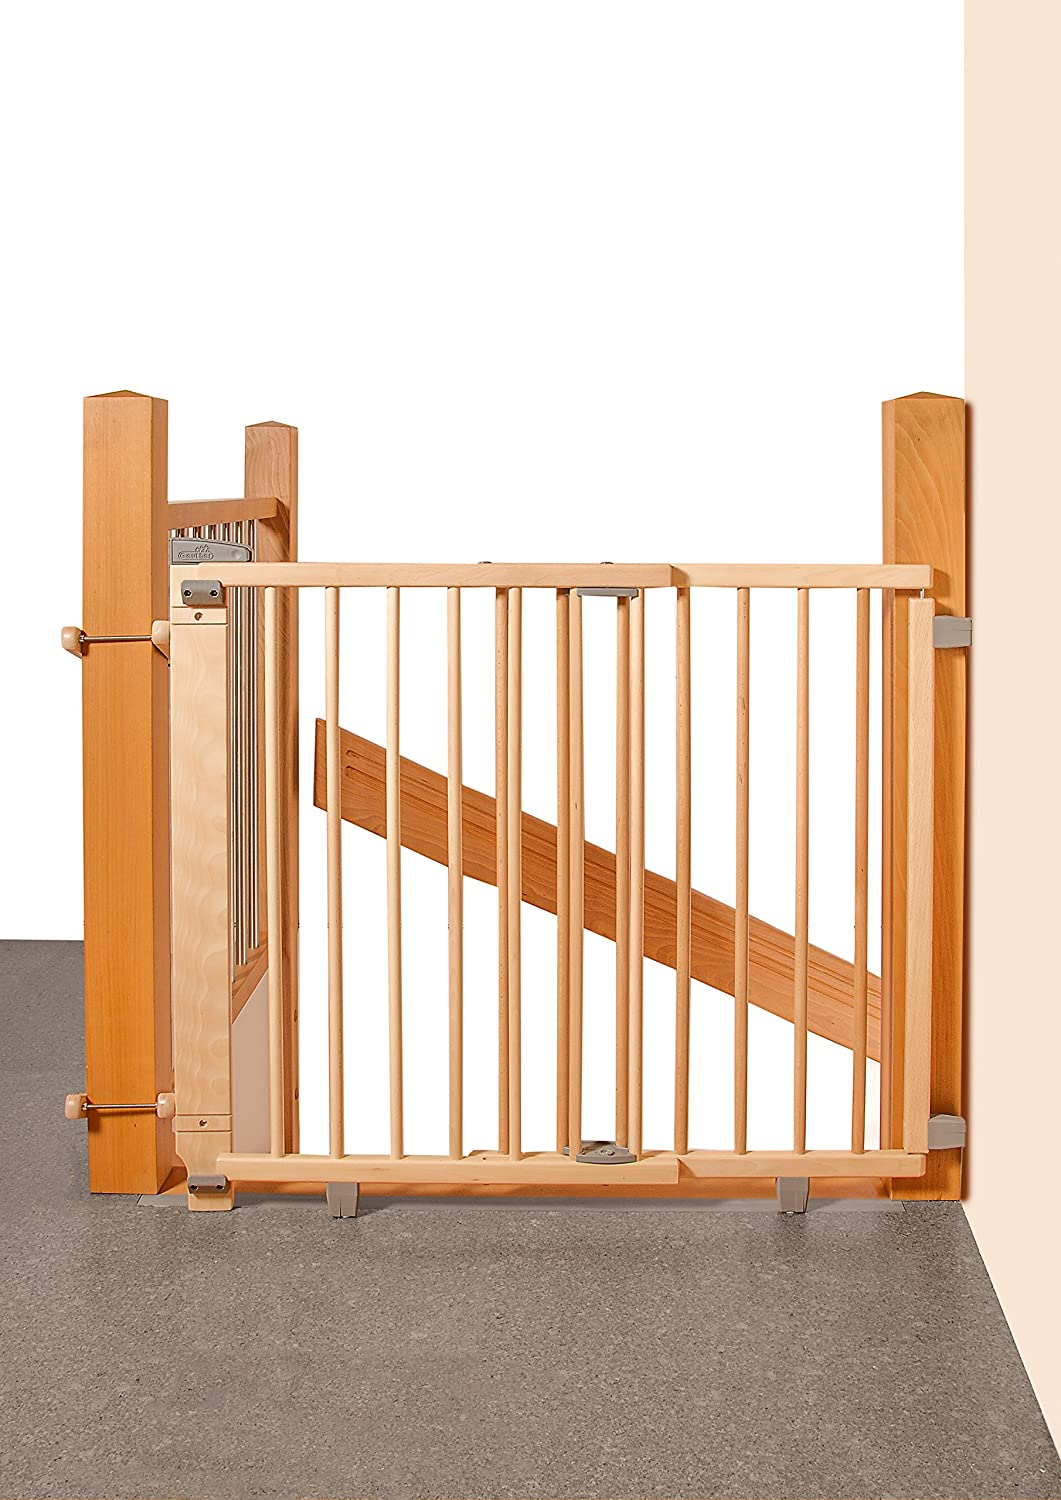 Geuther 2735 NA - Barrera de seguridad con bisagra para puertas, color natural 2735-NA